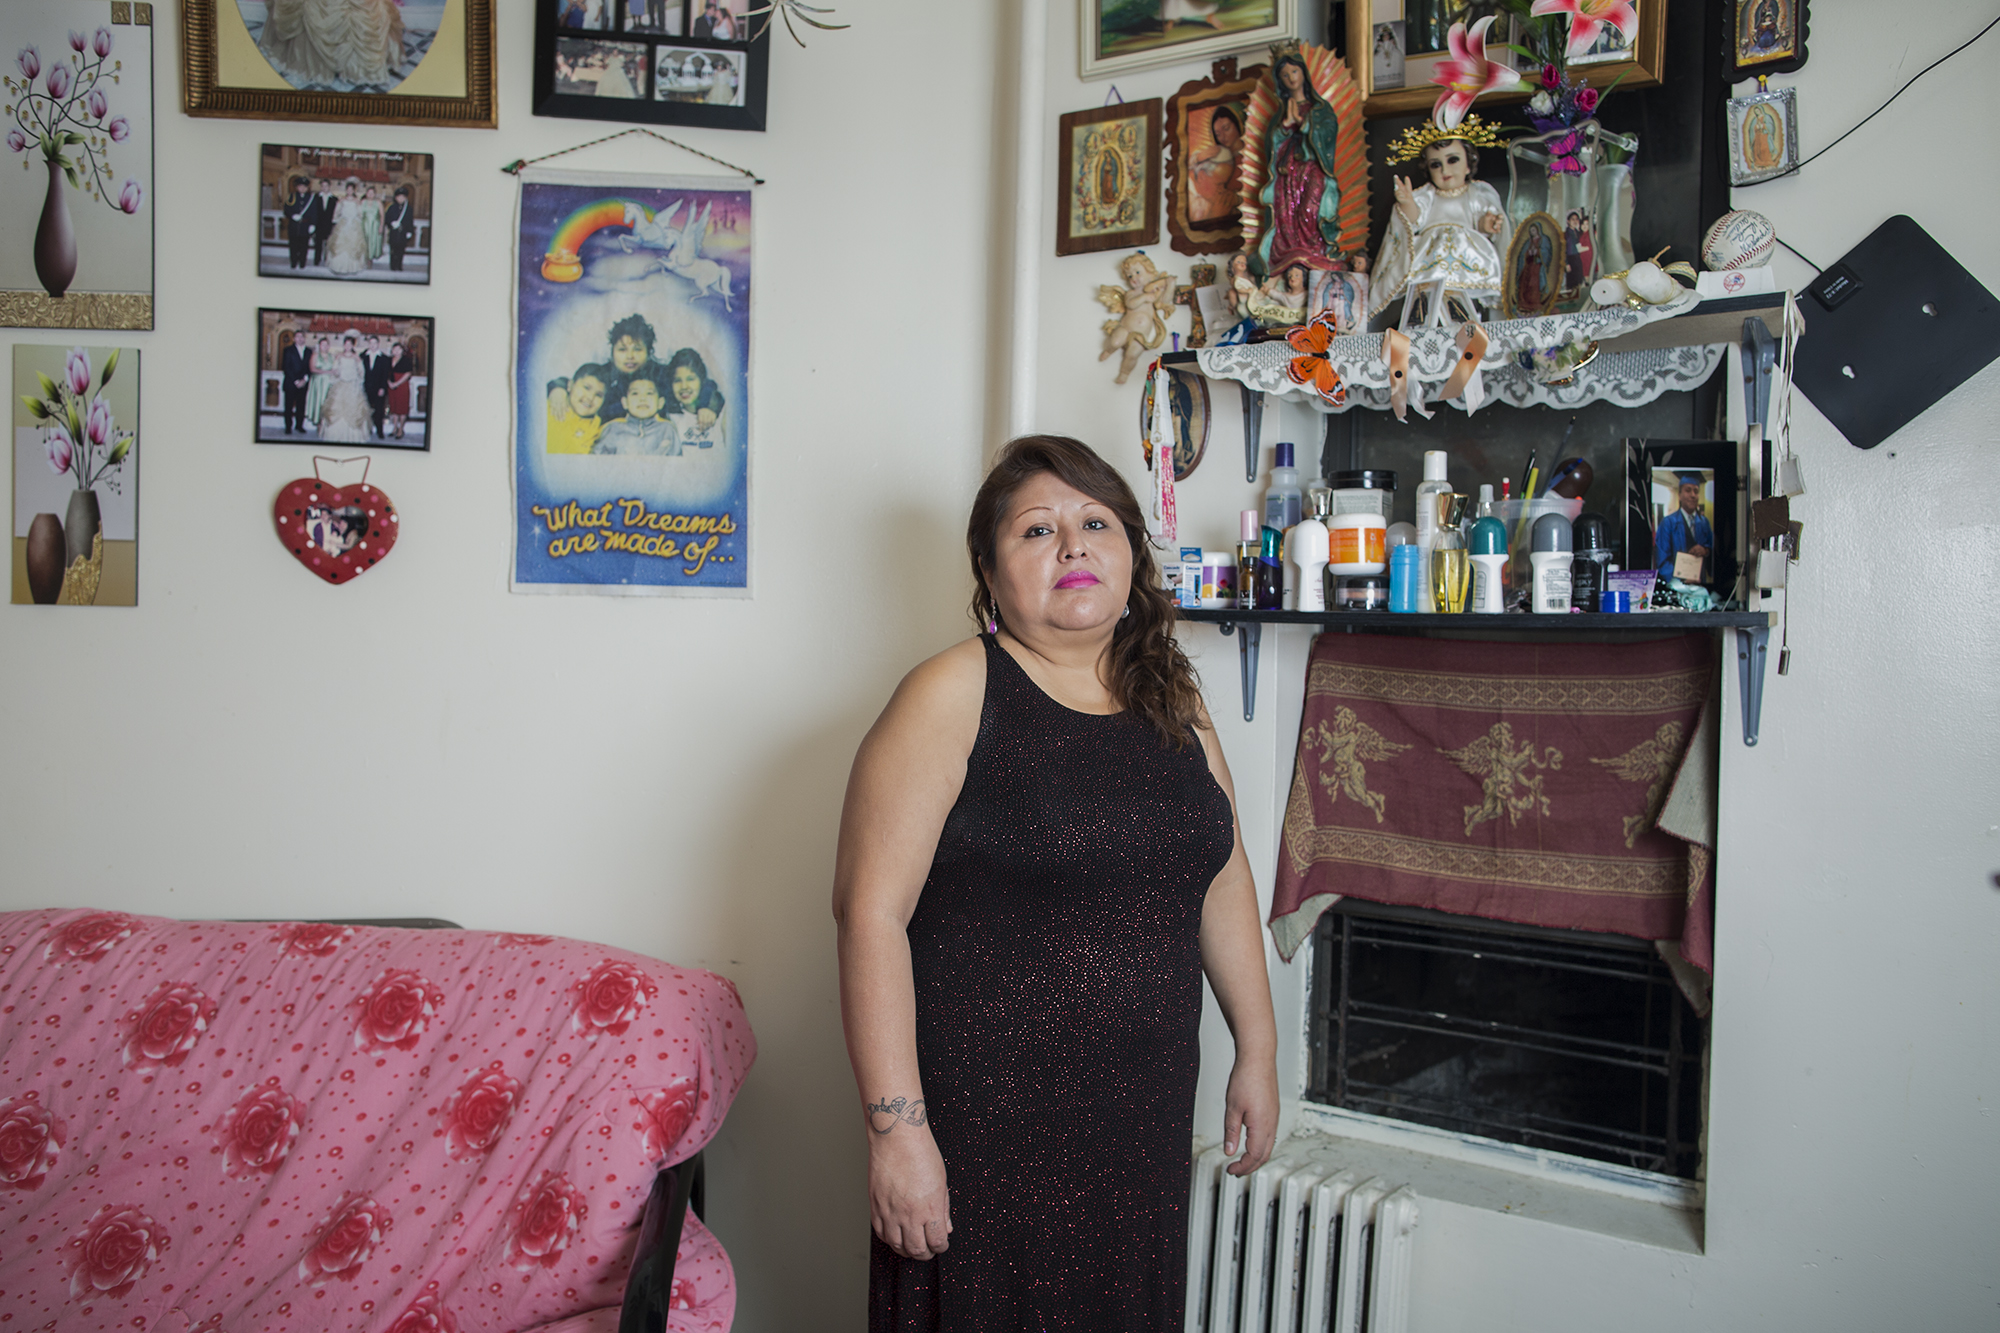 Yolanda is an activist member of the organization New Sanctuary Movement. She is originally from Xochihuehuetlán, state of Guerrero, México, but for 20 years she has been living in the Bronx. She likes tattoos and cooking the traditional food of her town, like pozole.